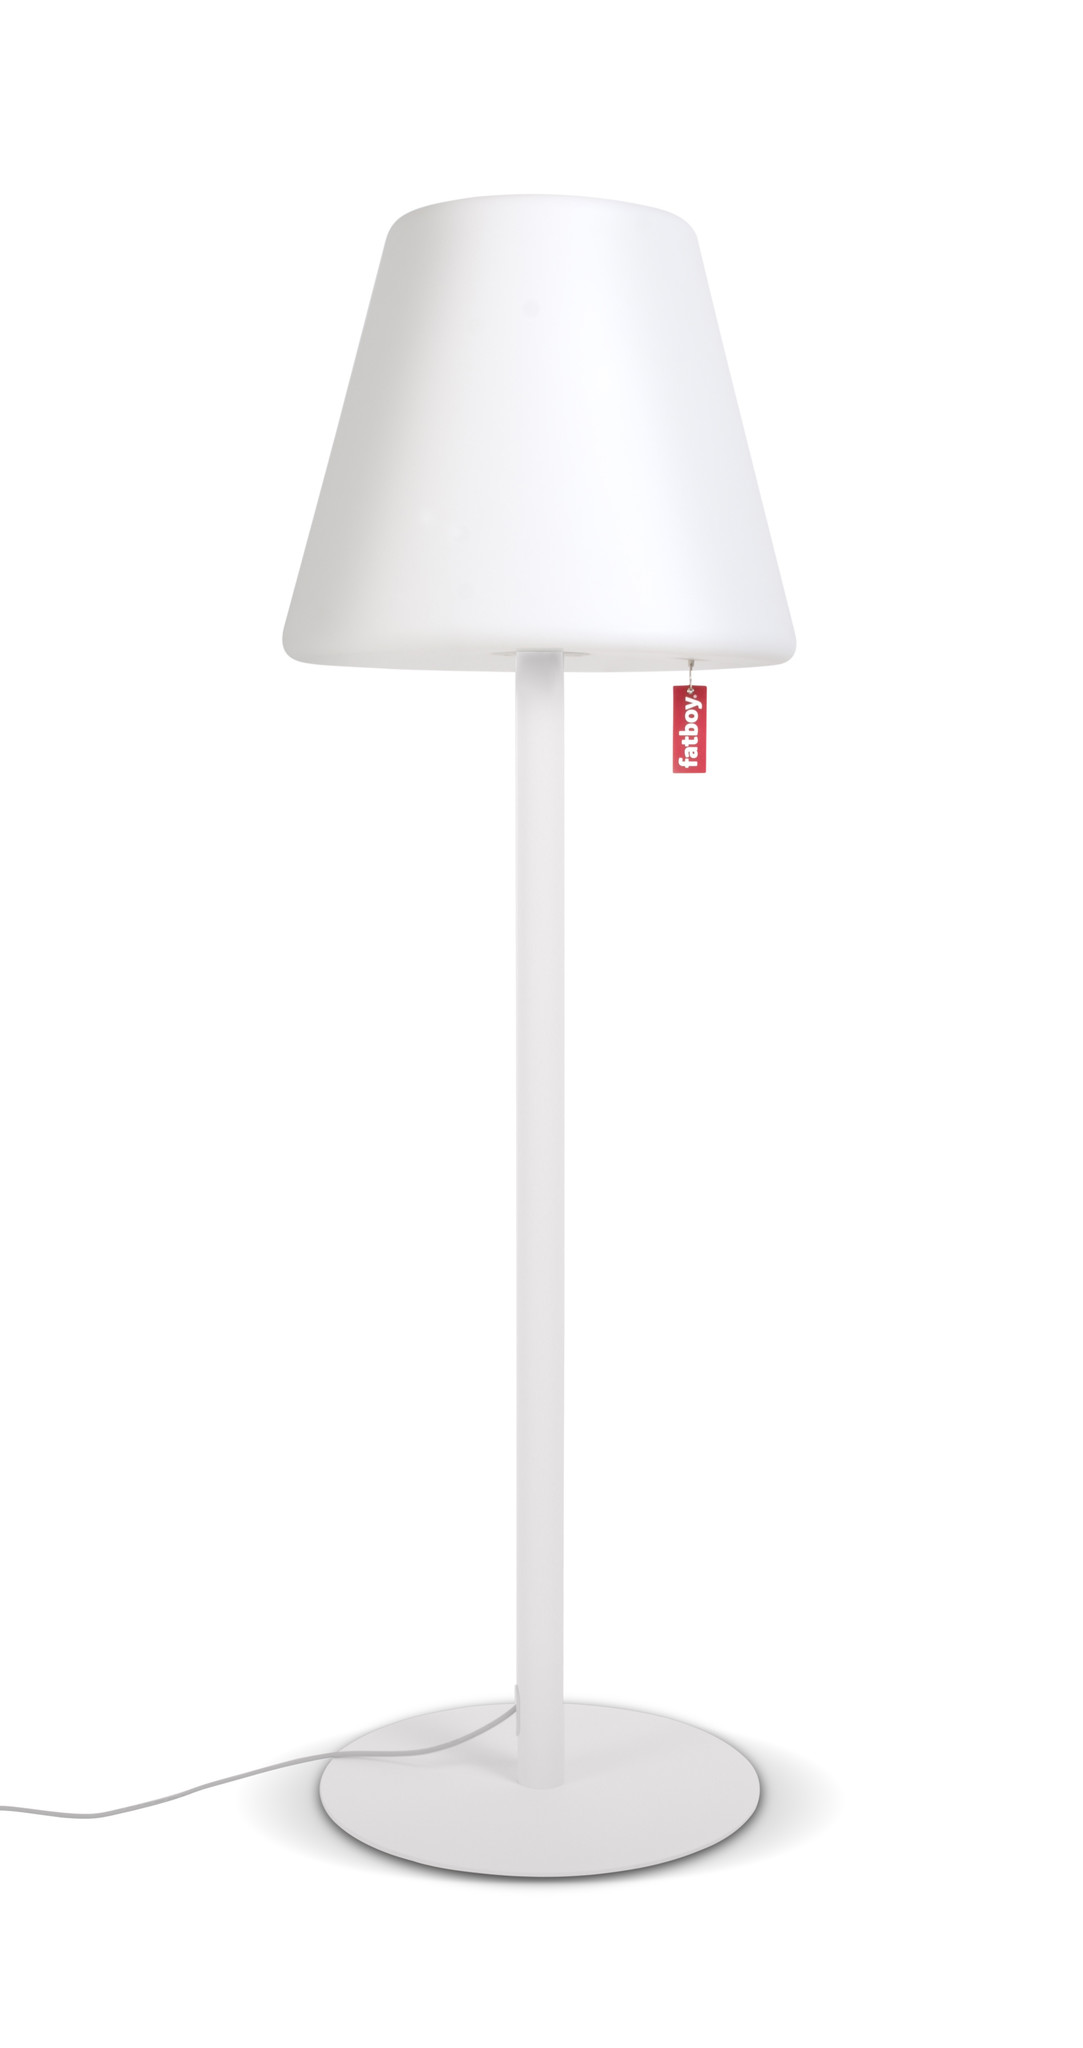 Fatboy Stehlampe Edison the Giant weiß